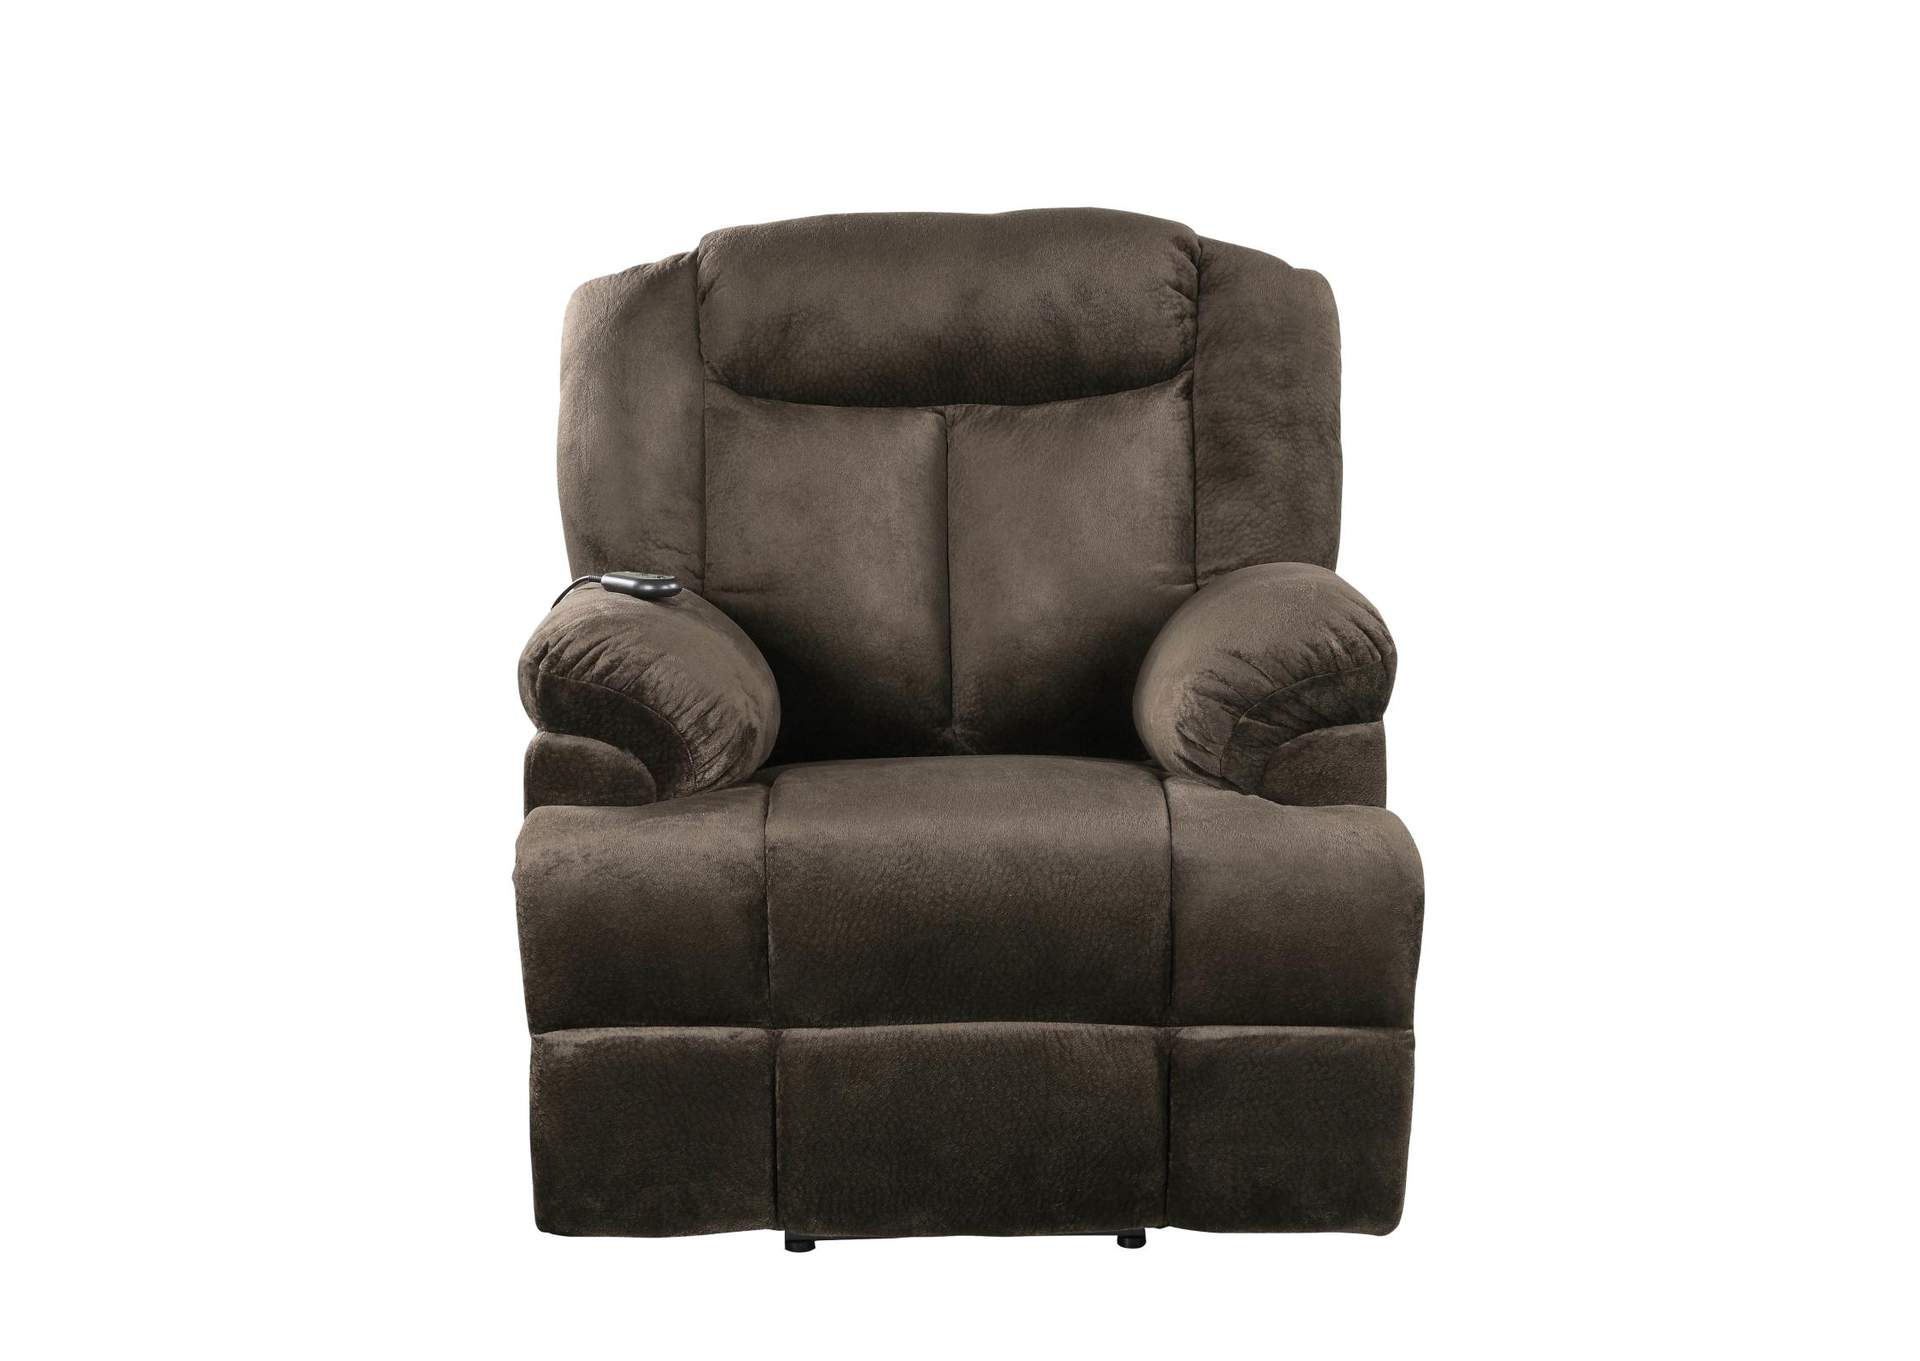 Licorice Casual Chocolate Velvet Power Lift Recliner,Coaster Furniture